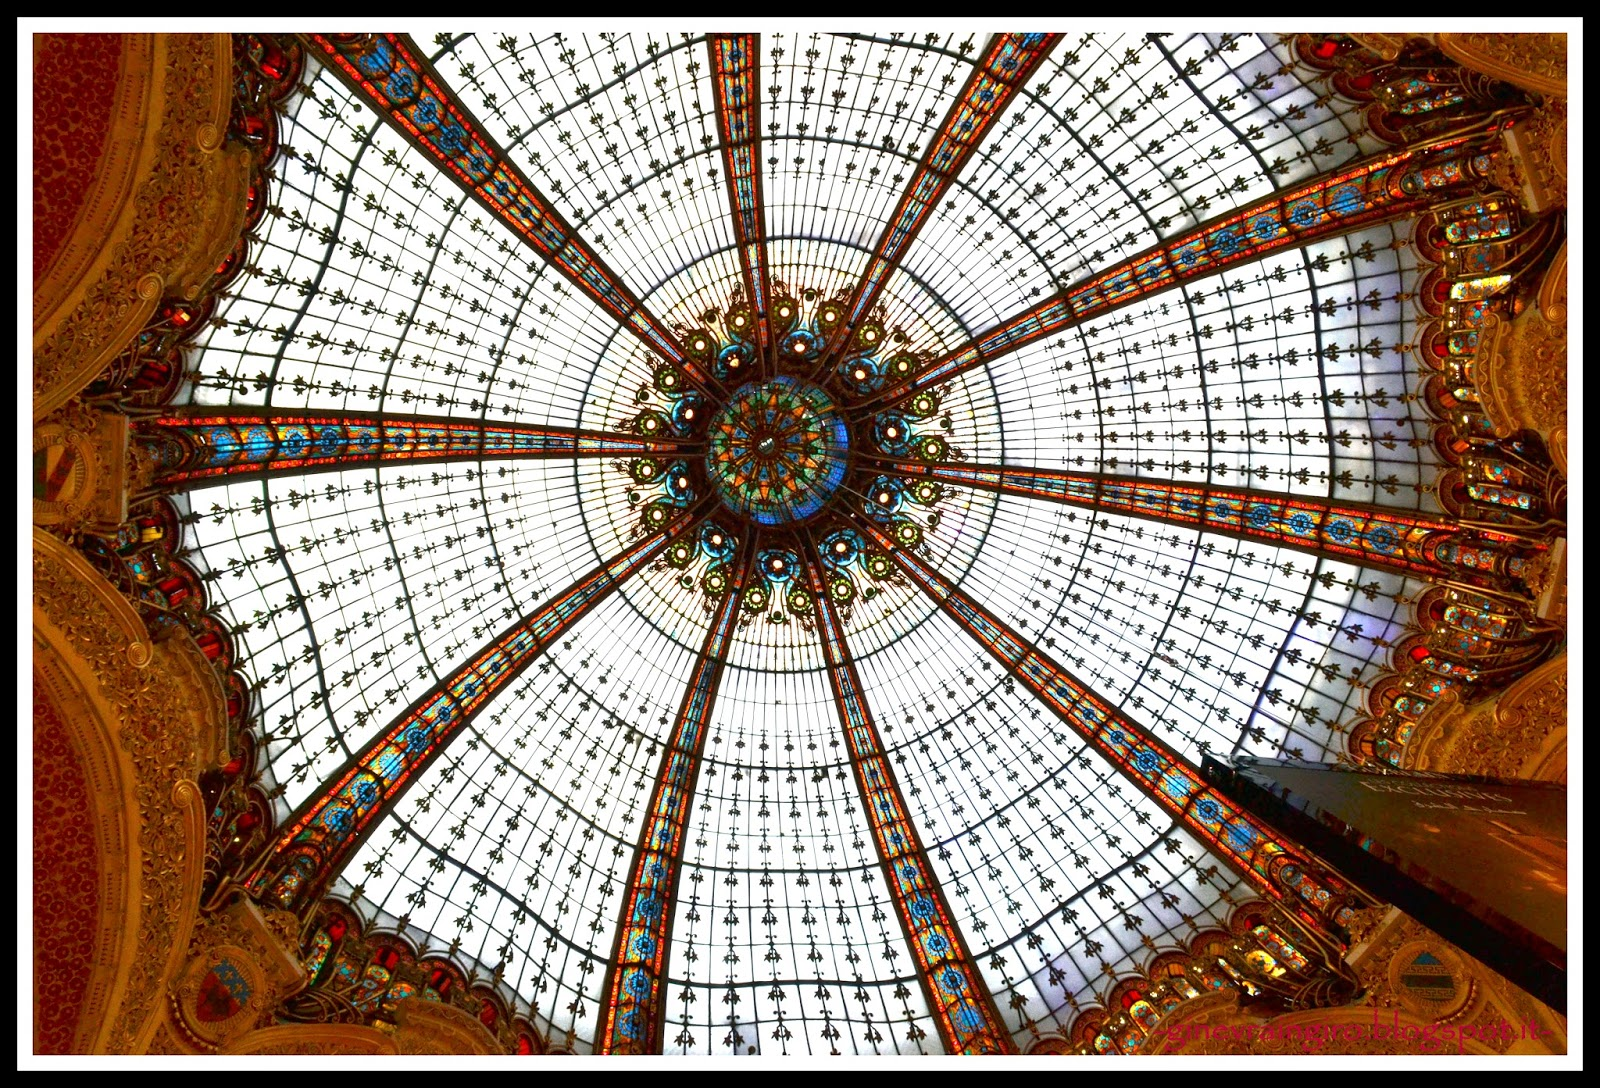 Ginevraingiro shopping e arte la galeries lafayette for Costruisci piani senza cupola